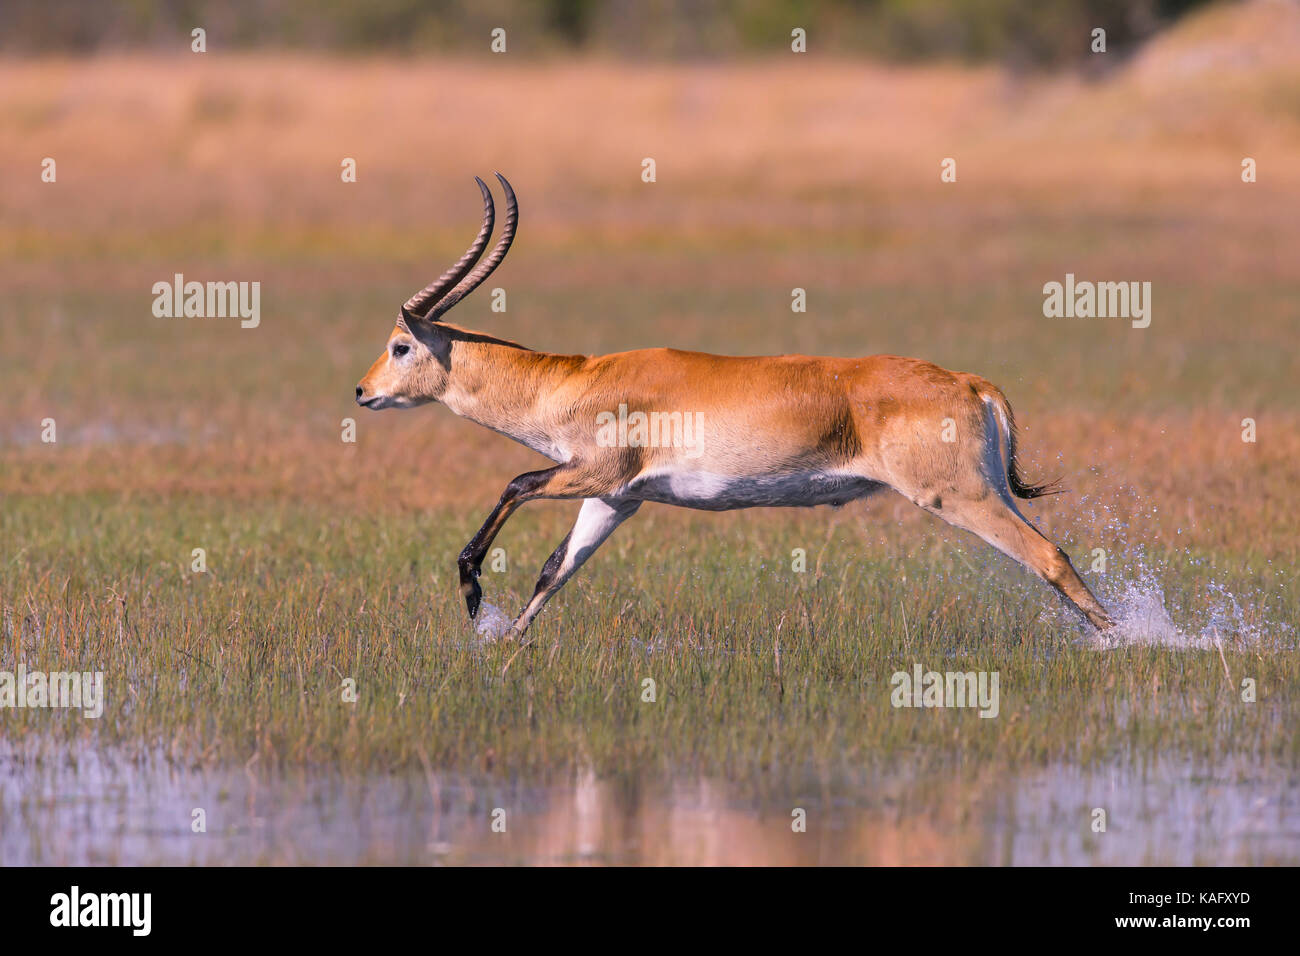 Red Lechwe (Kobus leche leche) Male, buck takes flight in leaping bounds through the freshwater marsh - Stock Image